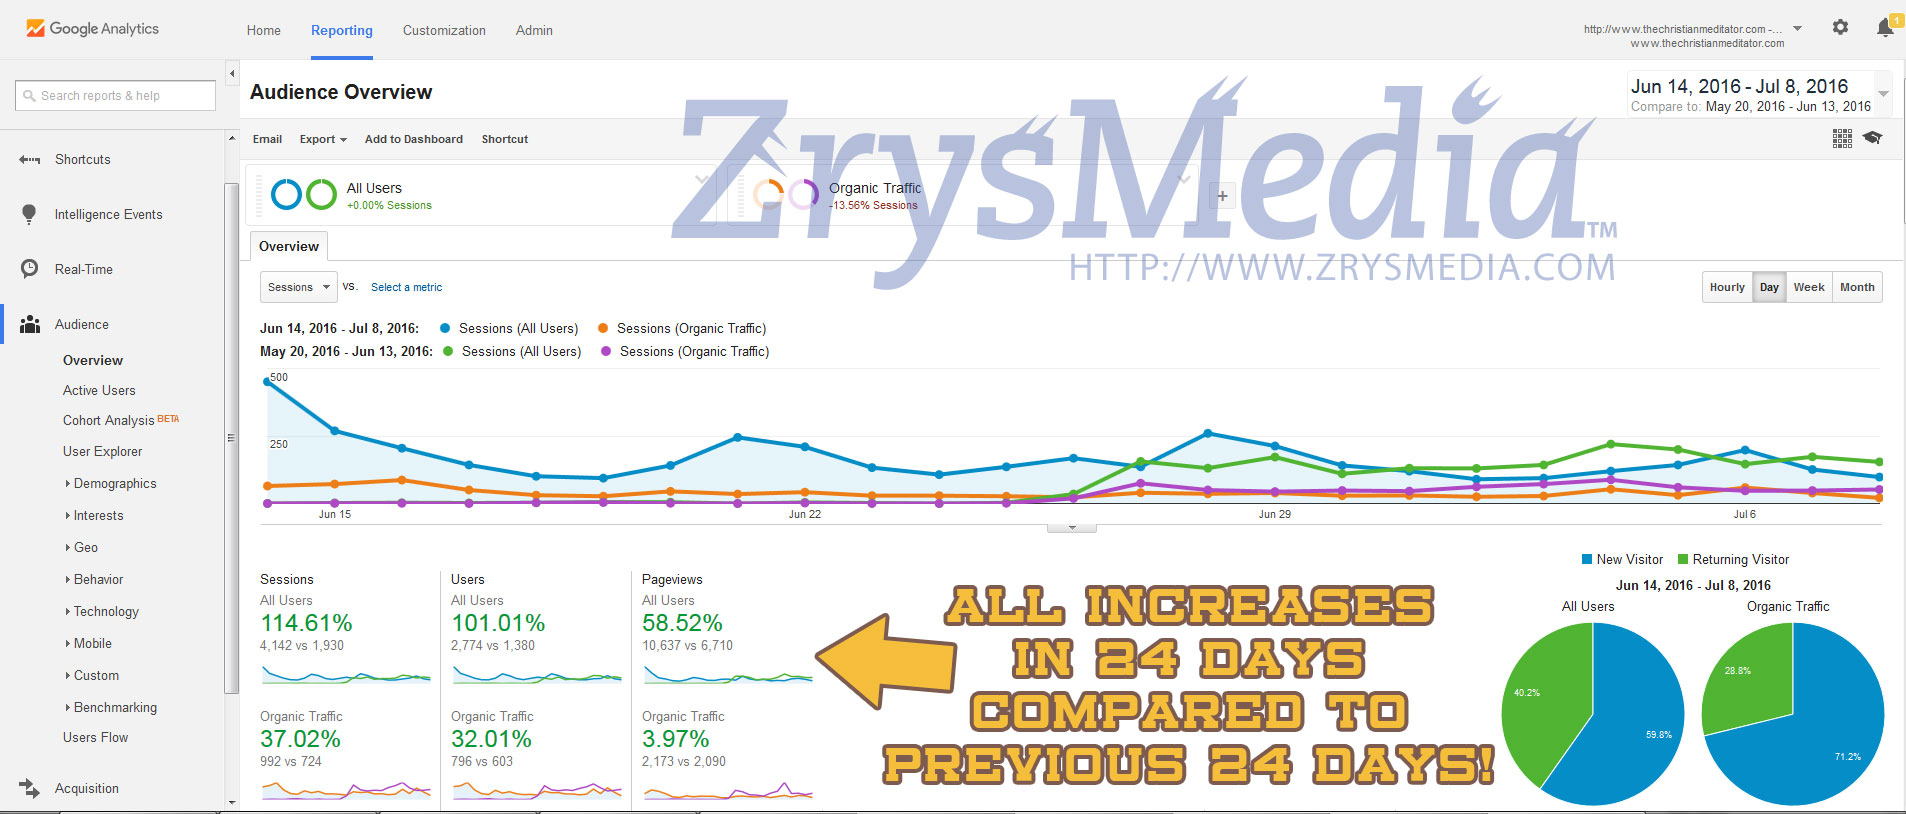 Our Client Rhonda's SEO results within just 24 days of working with ZrysMedia! We say we're the best for a reason!